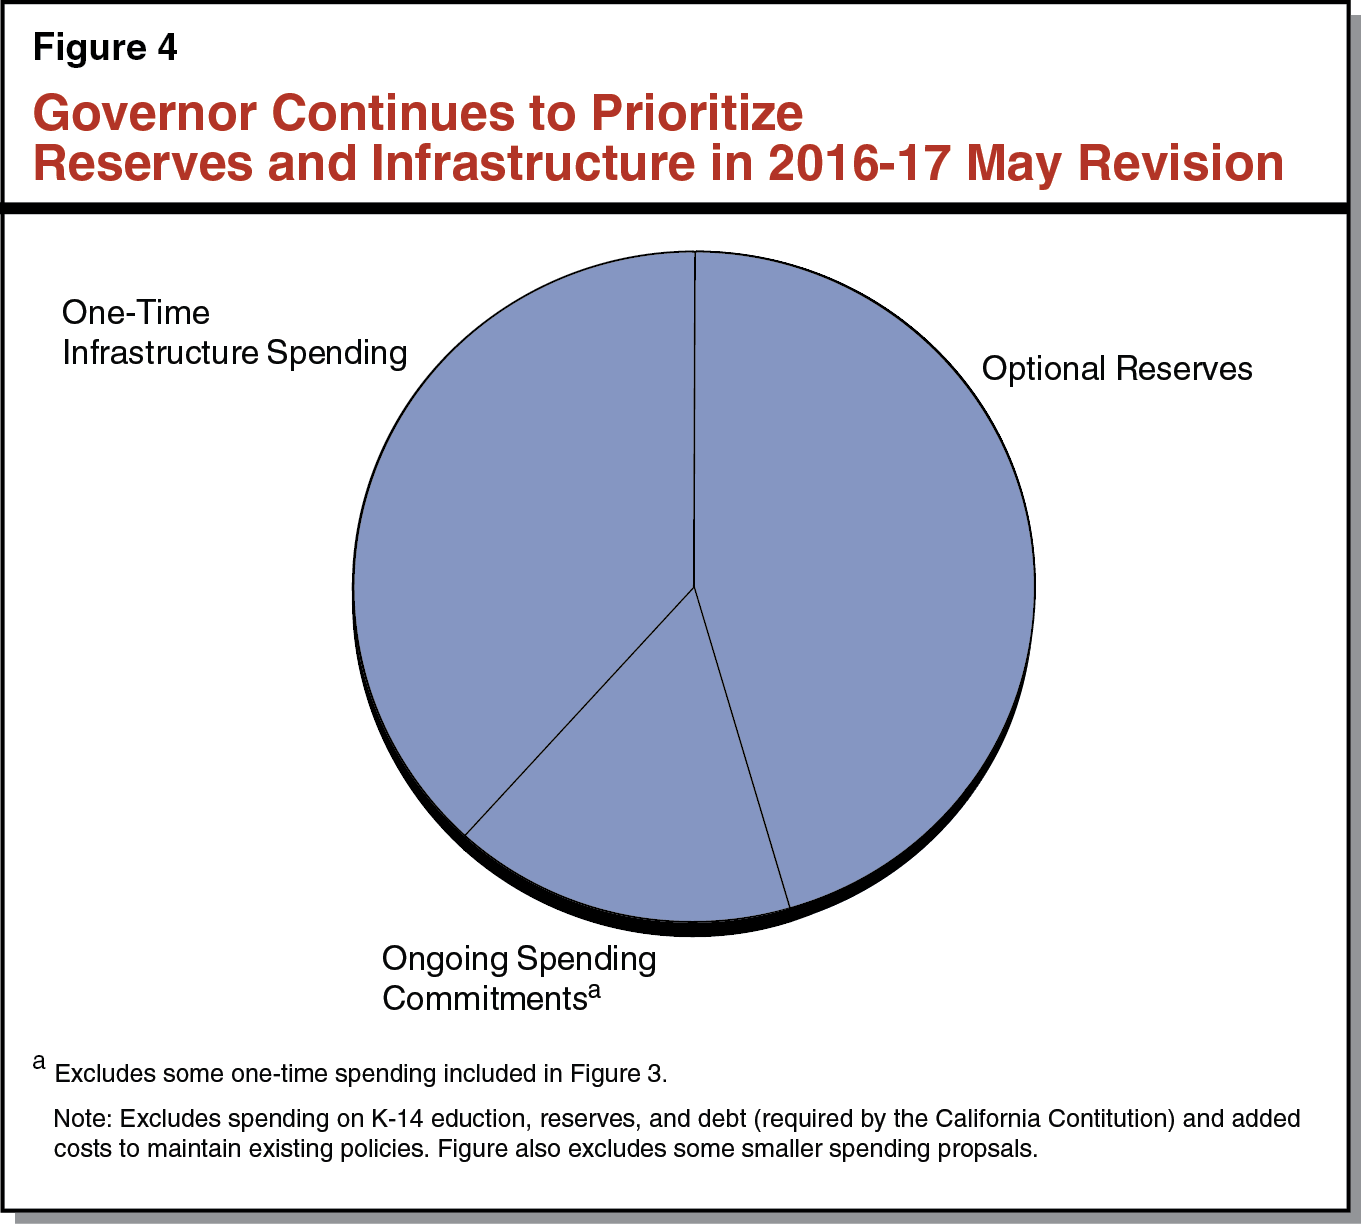 Figure 4 - Governor Continues to Prioritize Revenues and Infrastructure in 2016-17 May Revision